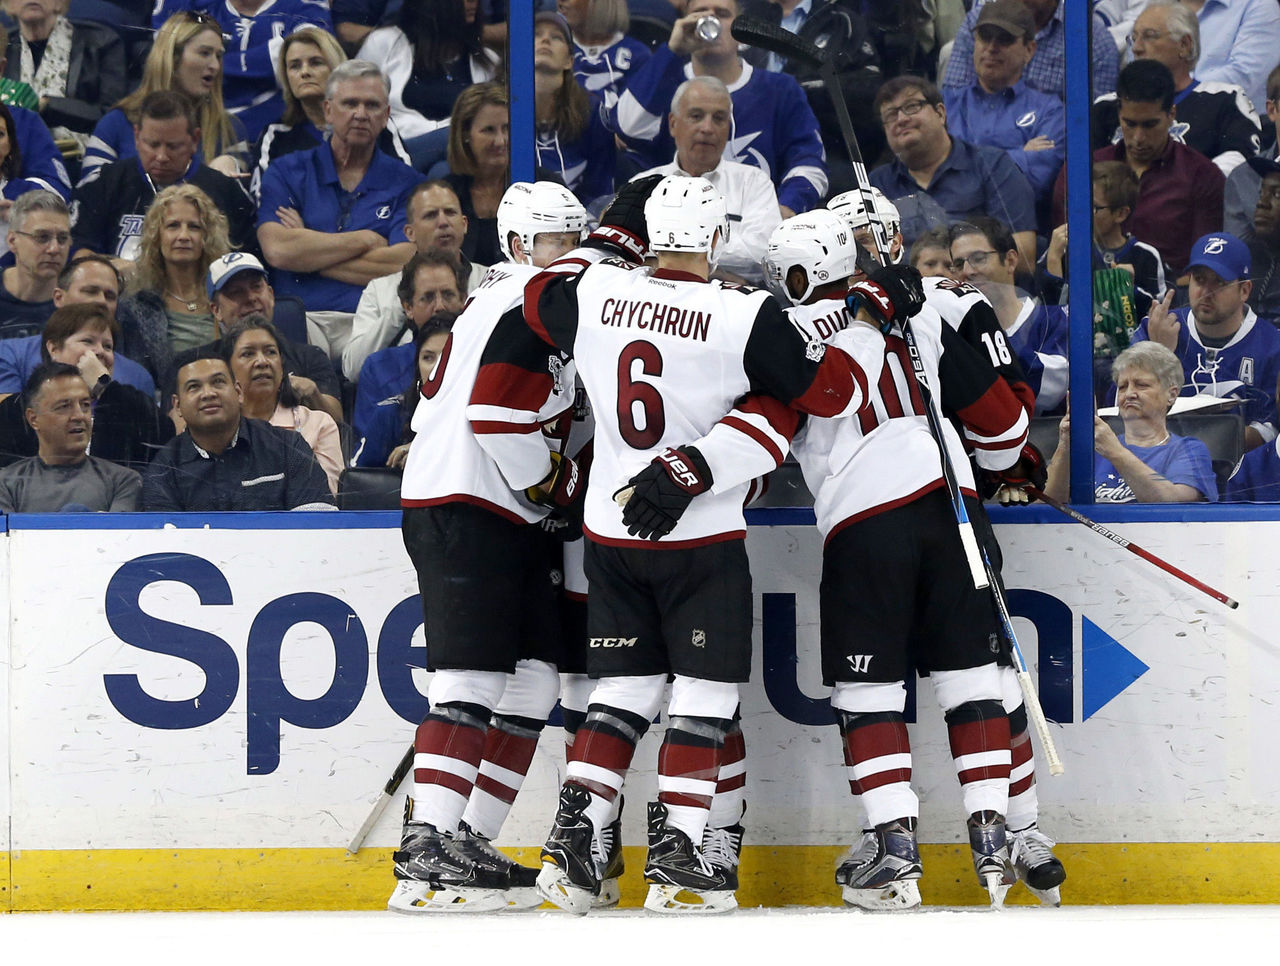 Cropped 2017 03 22t015511z 567745749 nocid rtrmadp 3 nhl arizona coyotes at tampa bay lightning